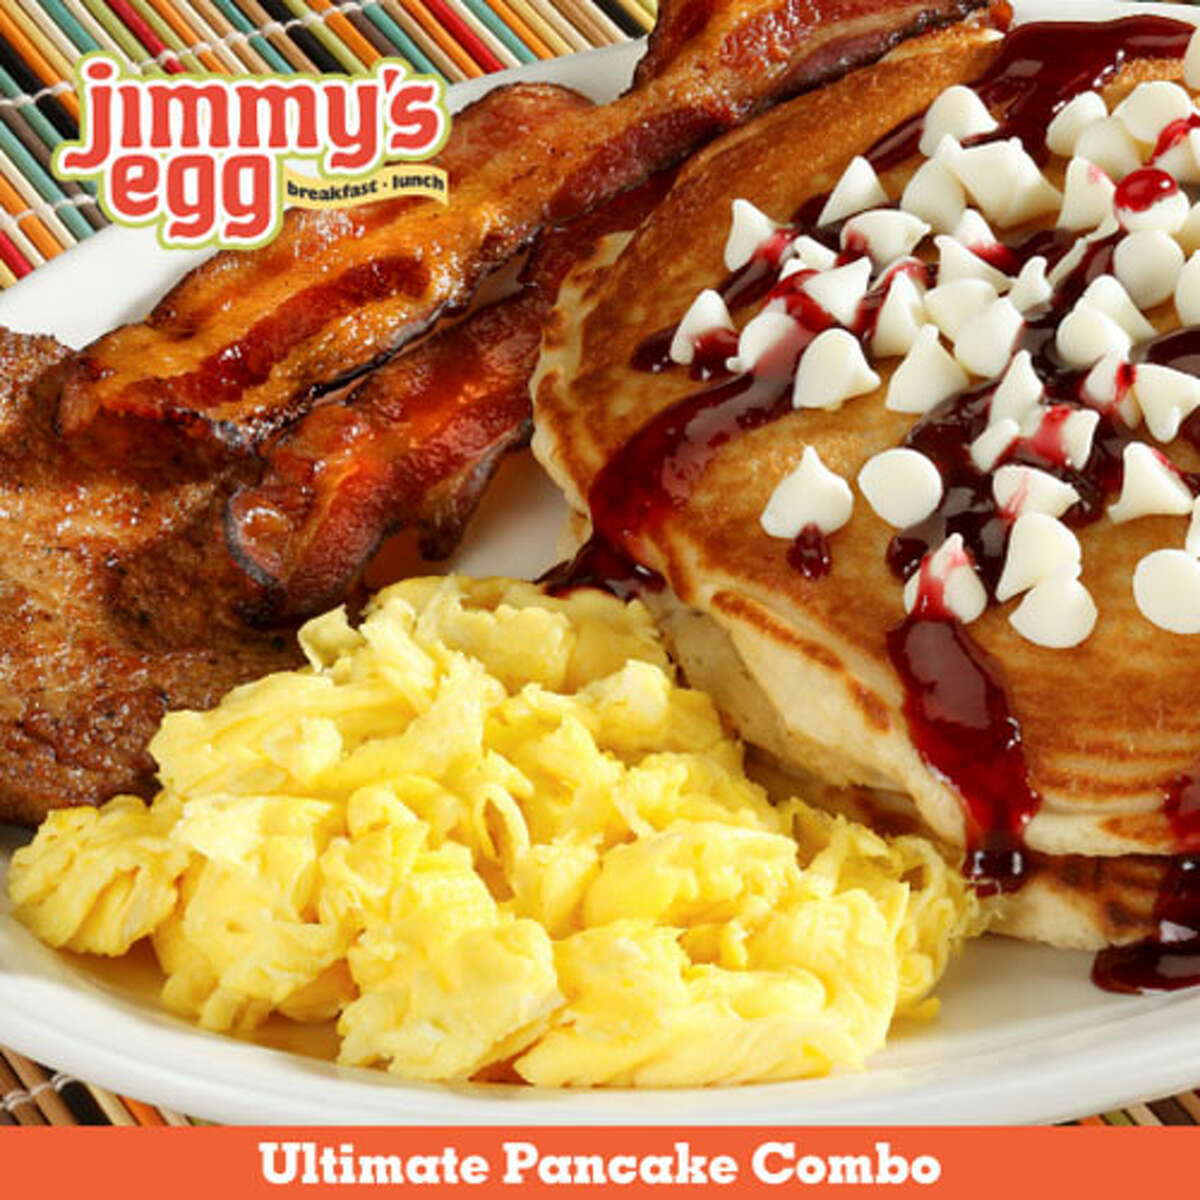 Jimmy's Egg- Best Breakfast With two locations in San Antonio, Jimmy's Egg offers more than 40,000 ways to create an omelet.